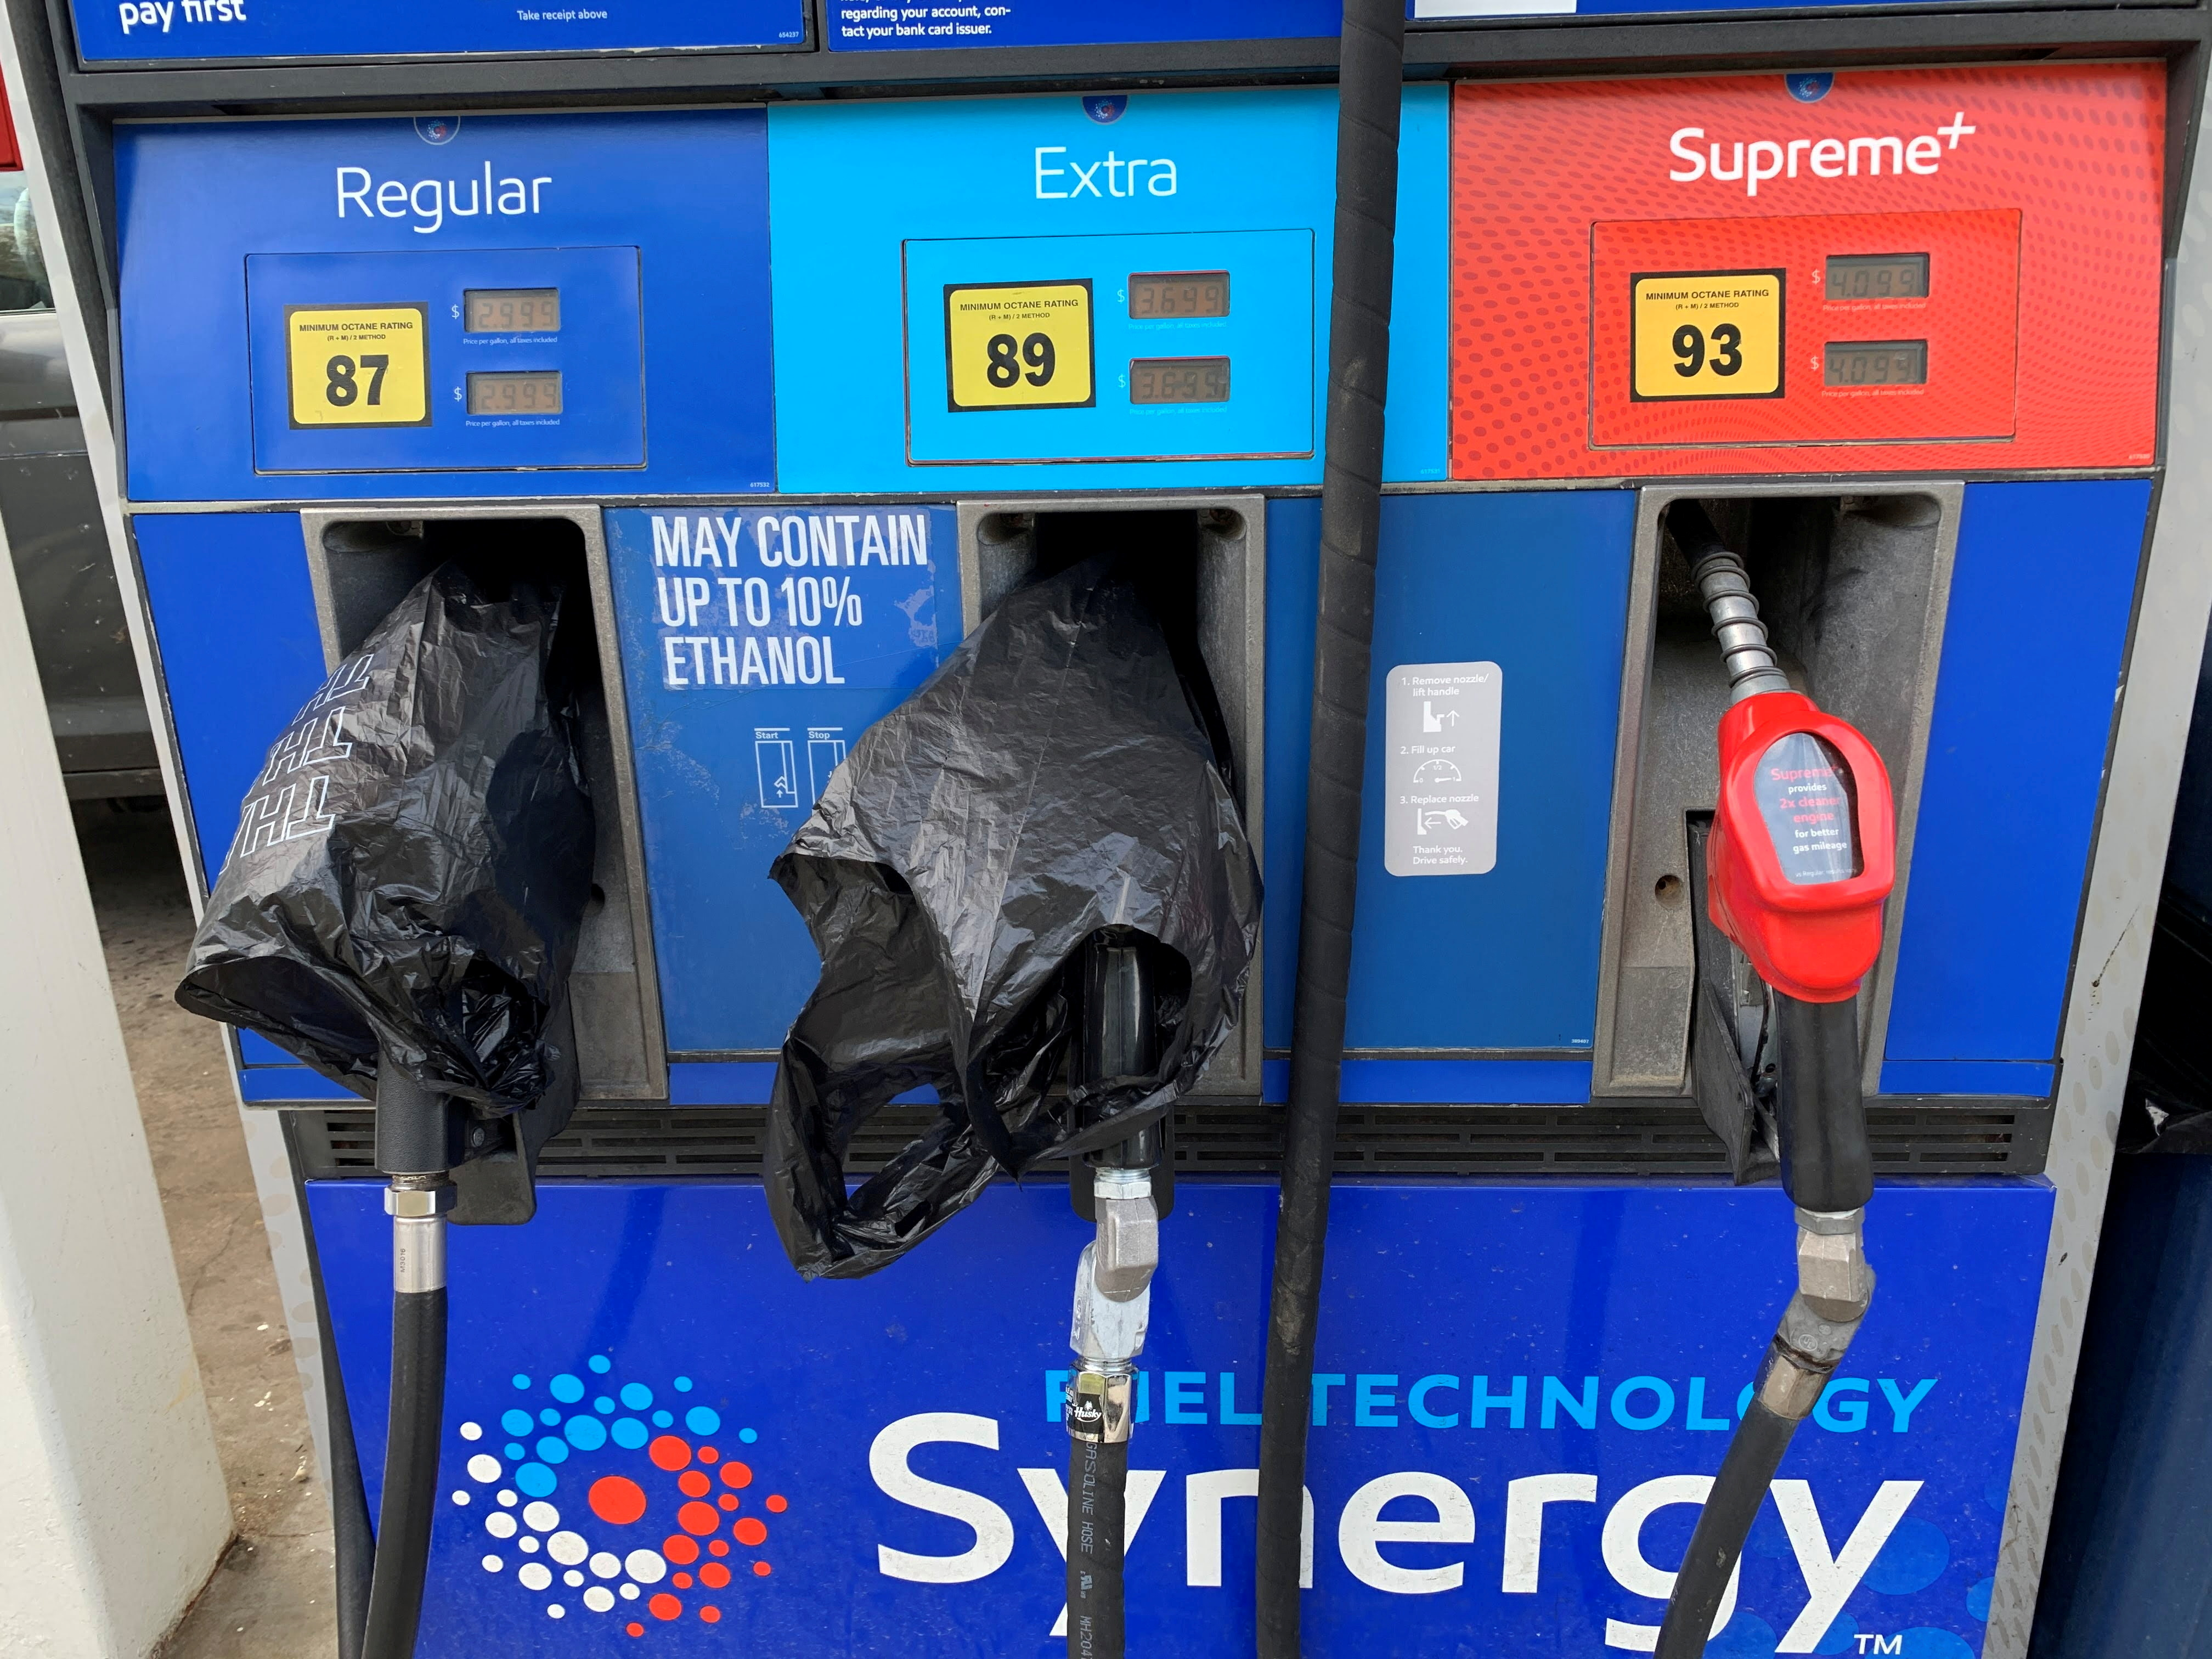 Two out of service fuel nozzles are covered in plastic on a gas pump at a gas station in Waynesville, North Carolina, after a gasoline supply crunch caused by the Colonial Pipeline hack, May 11, 2021. Martin Brossman via REUTERS